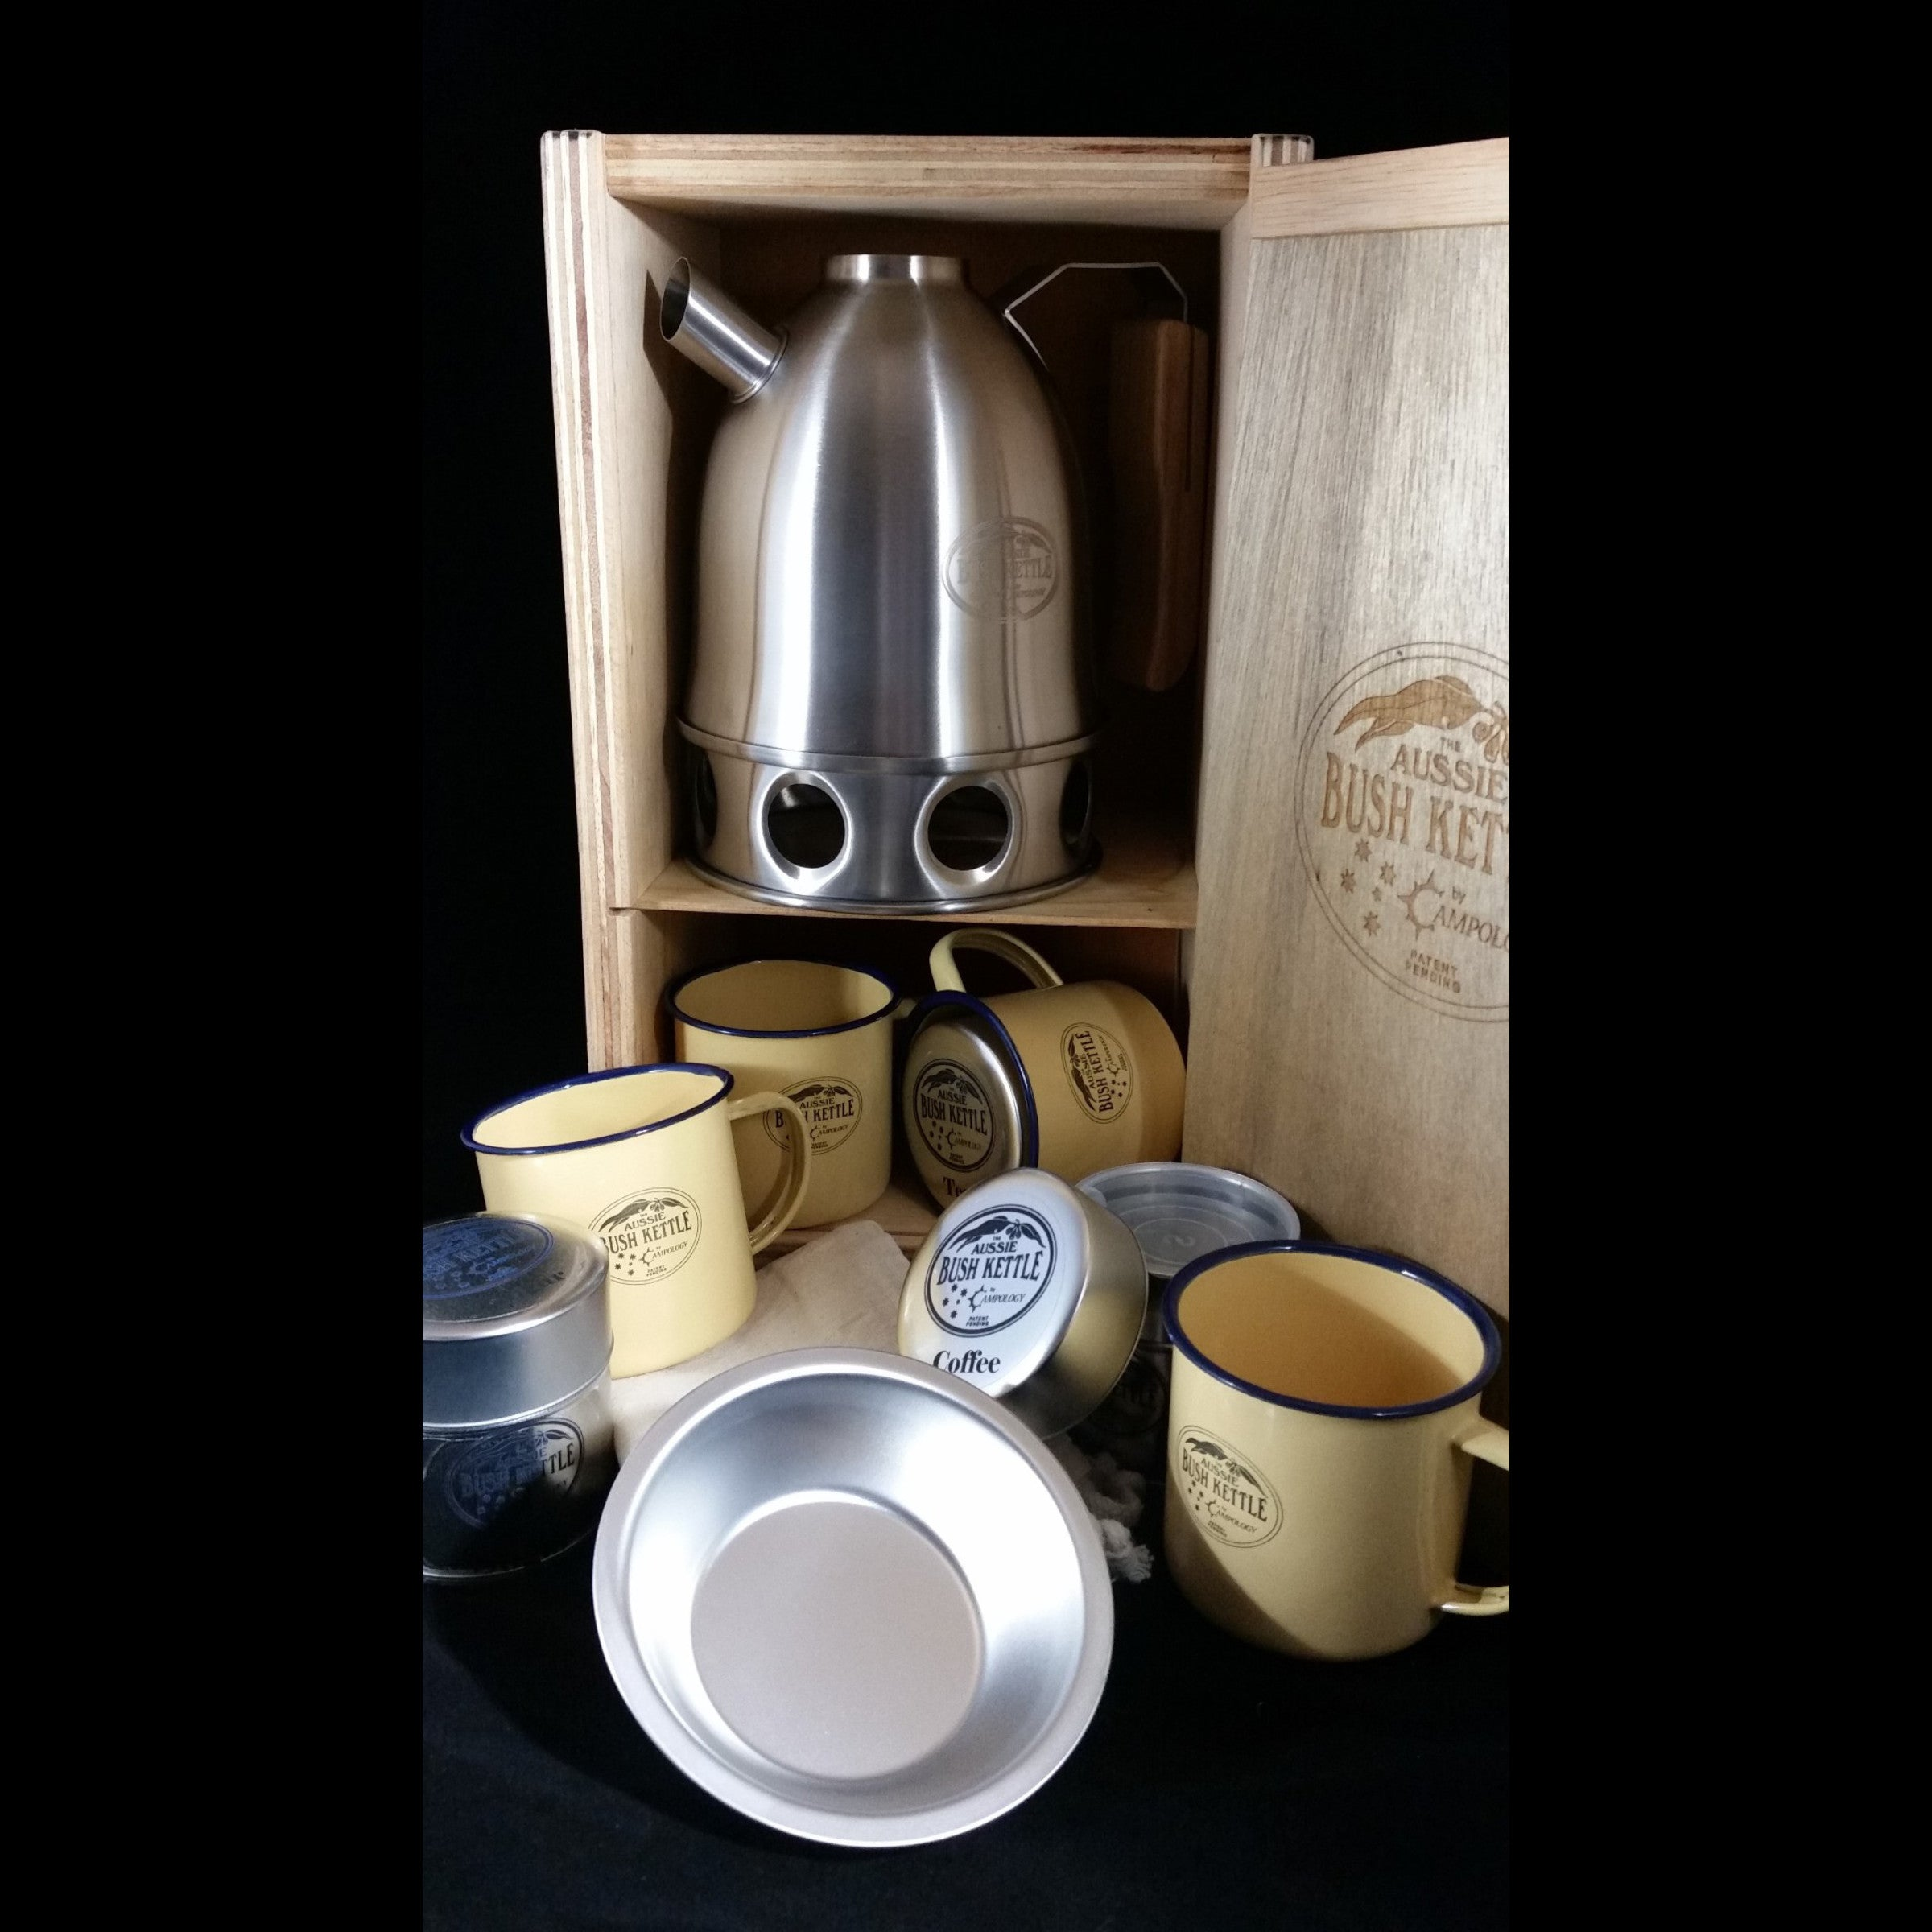 Aussie Bush Kettle - Gold Package